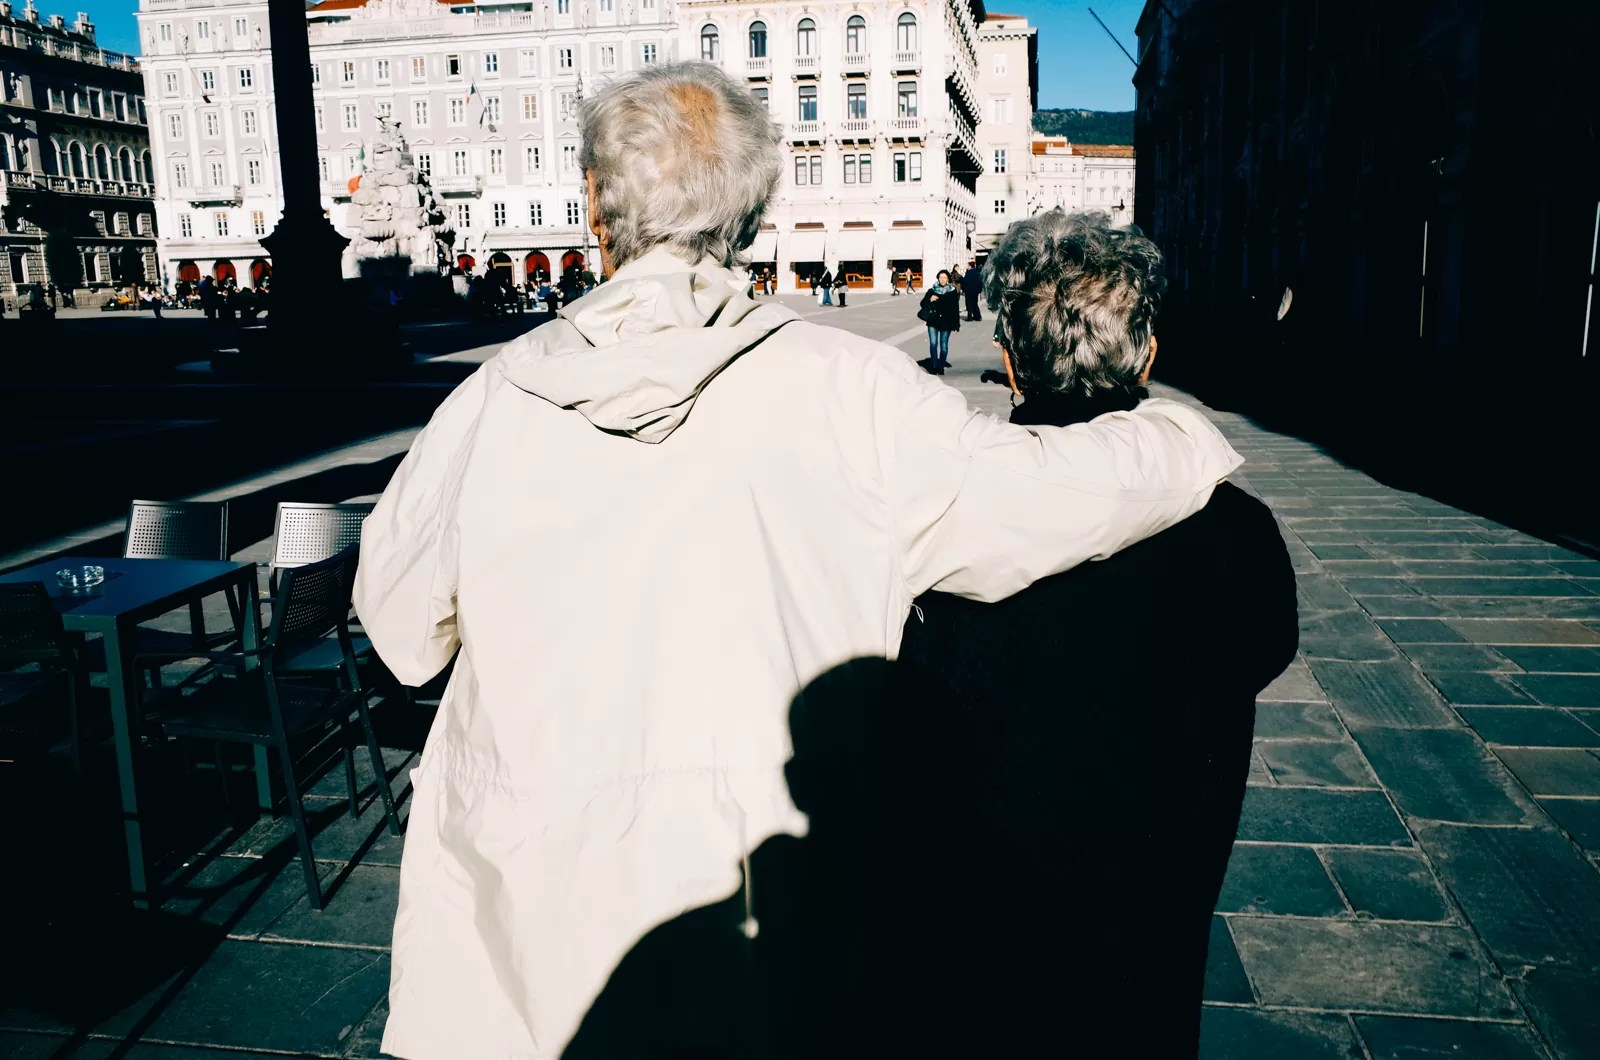 R0006802 - One Day in Trieste [Color Street Photography] - fotostreet.it